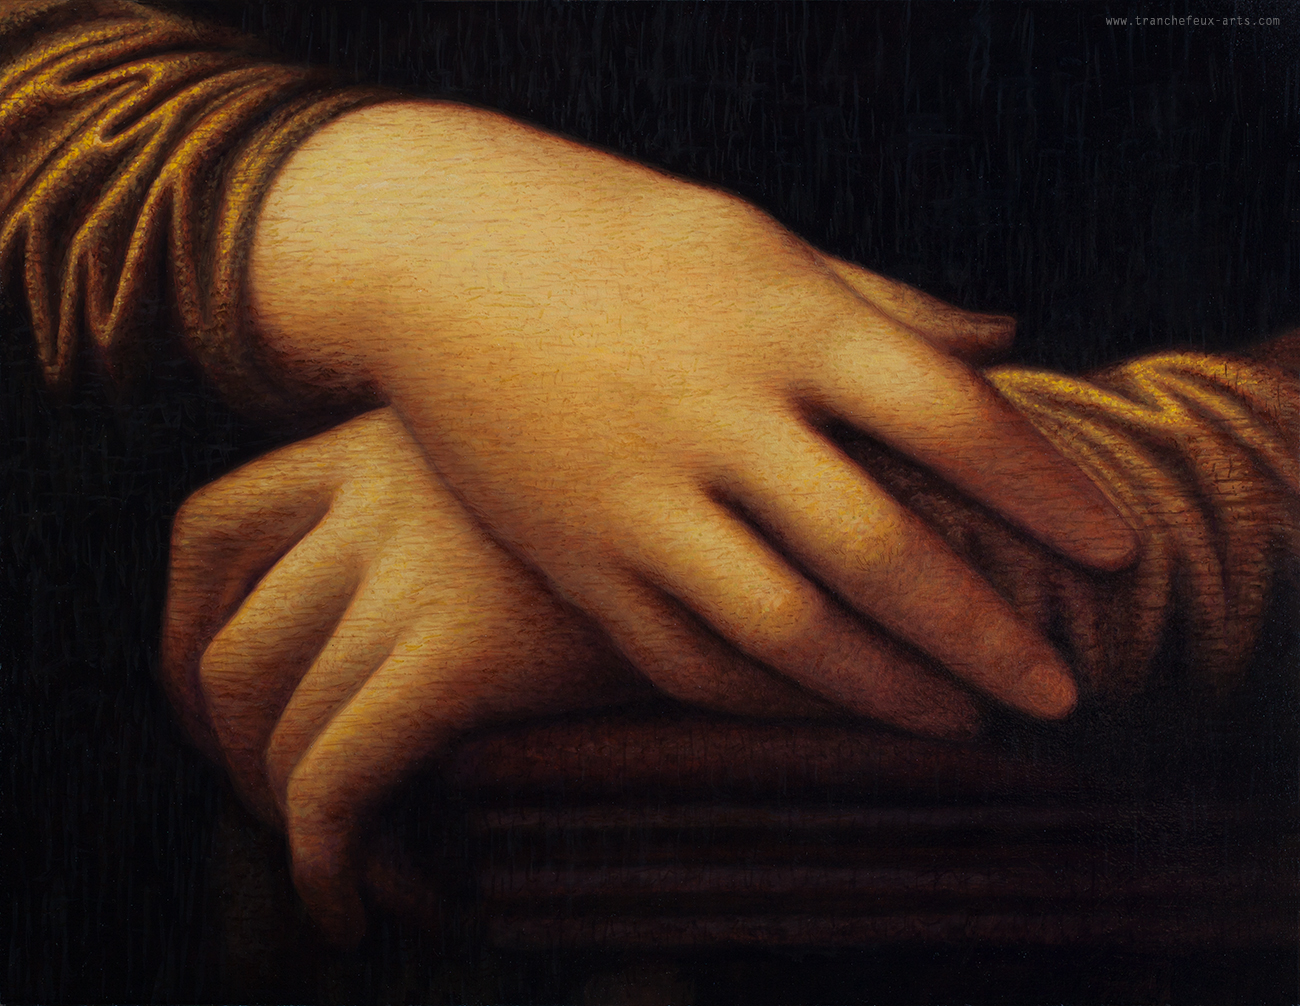 HAND OF MONA LISA